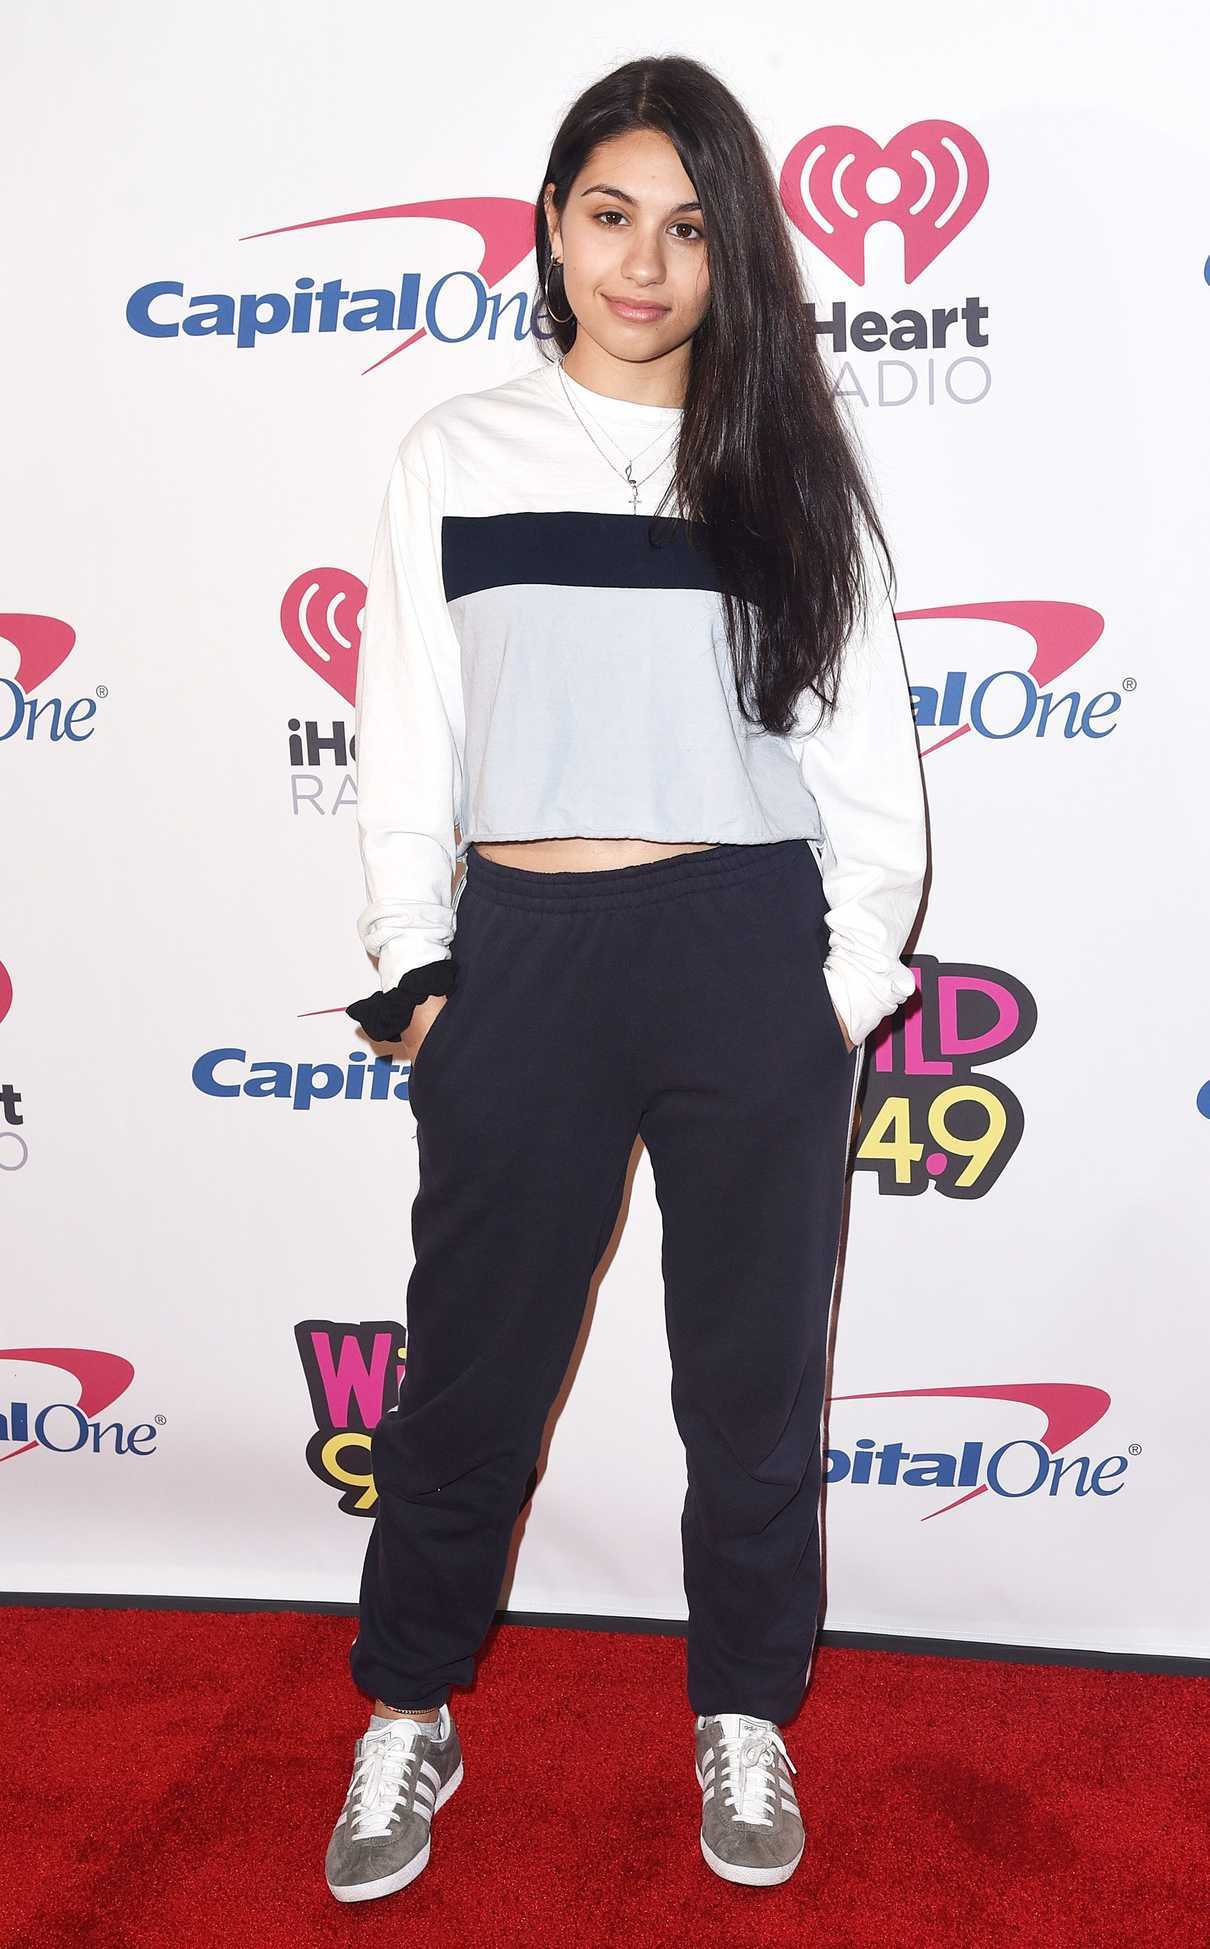 Alessia Cara Attends 2018 WiLD 94.9's FM's iHeartRadio Jingle Ball at Bill Graham Civic Auditorium in San Francisco 12/01/2018